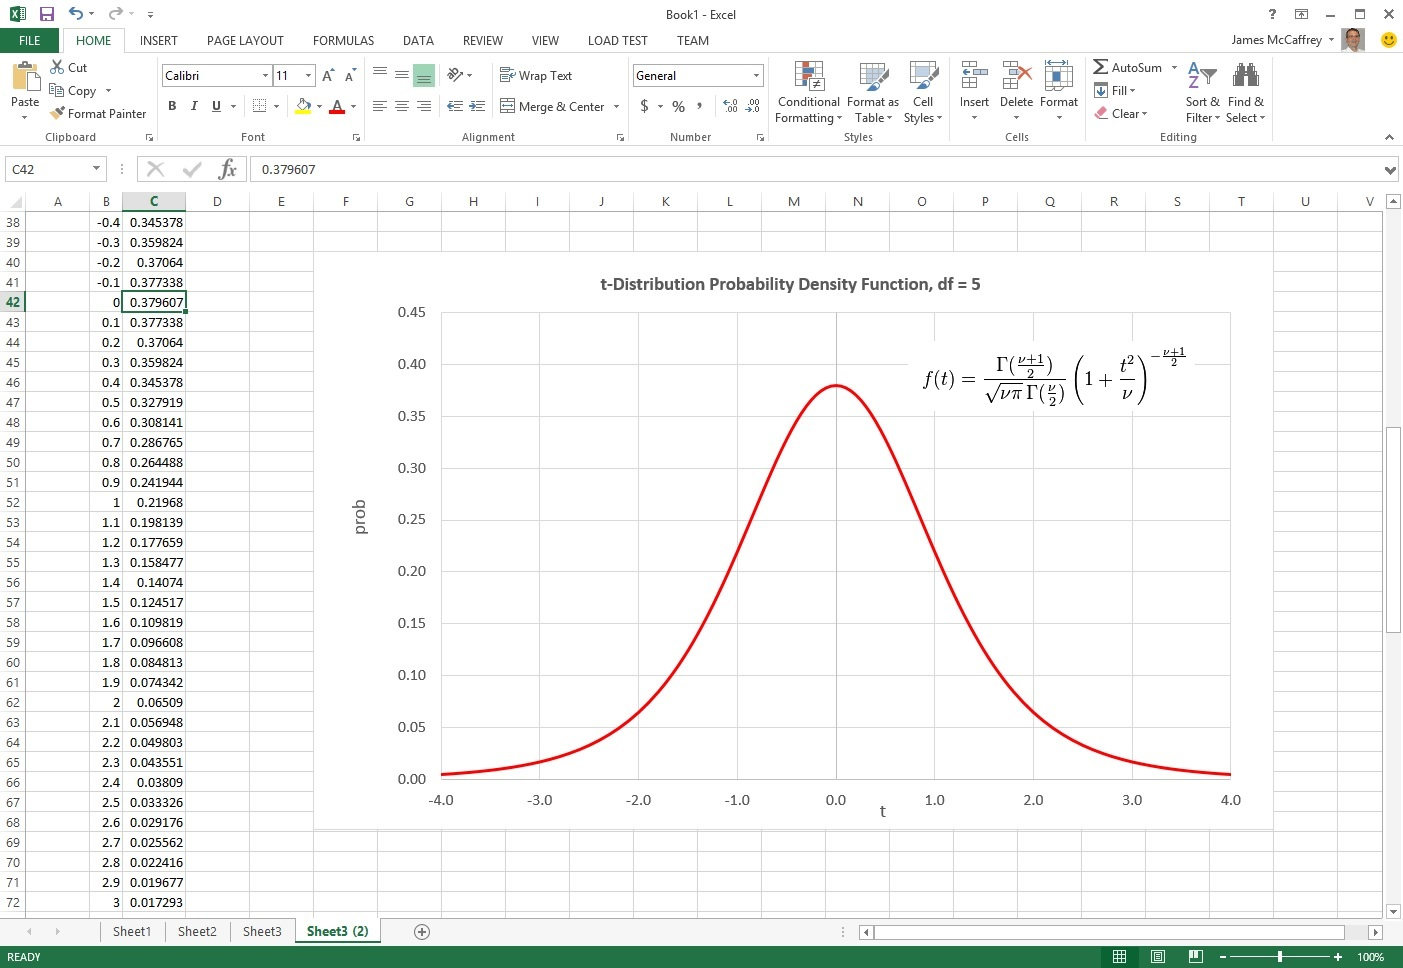 Graphing the t-Distribution Probability Density Function using ...